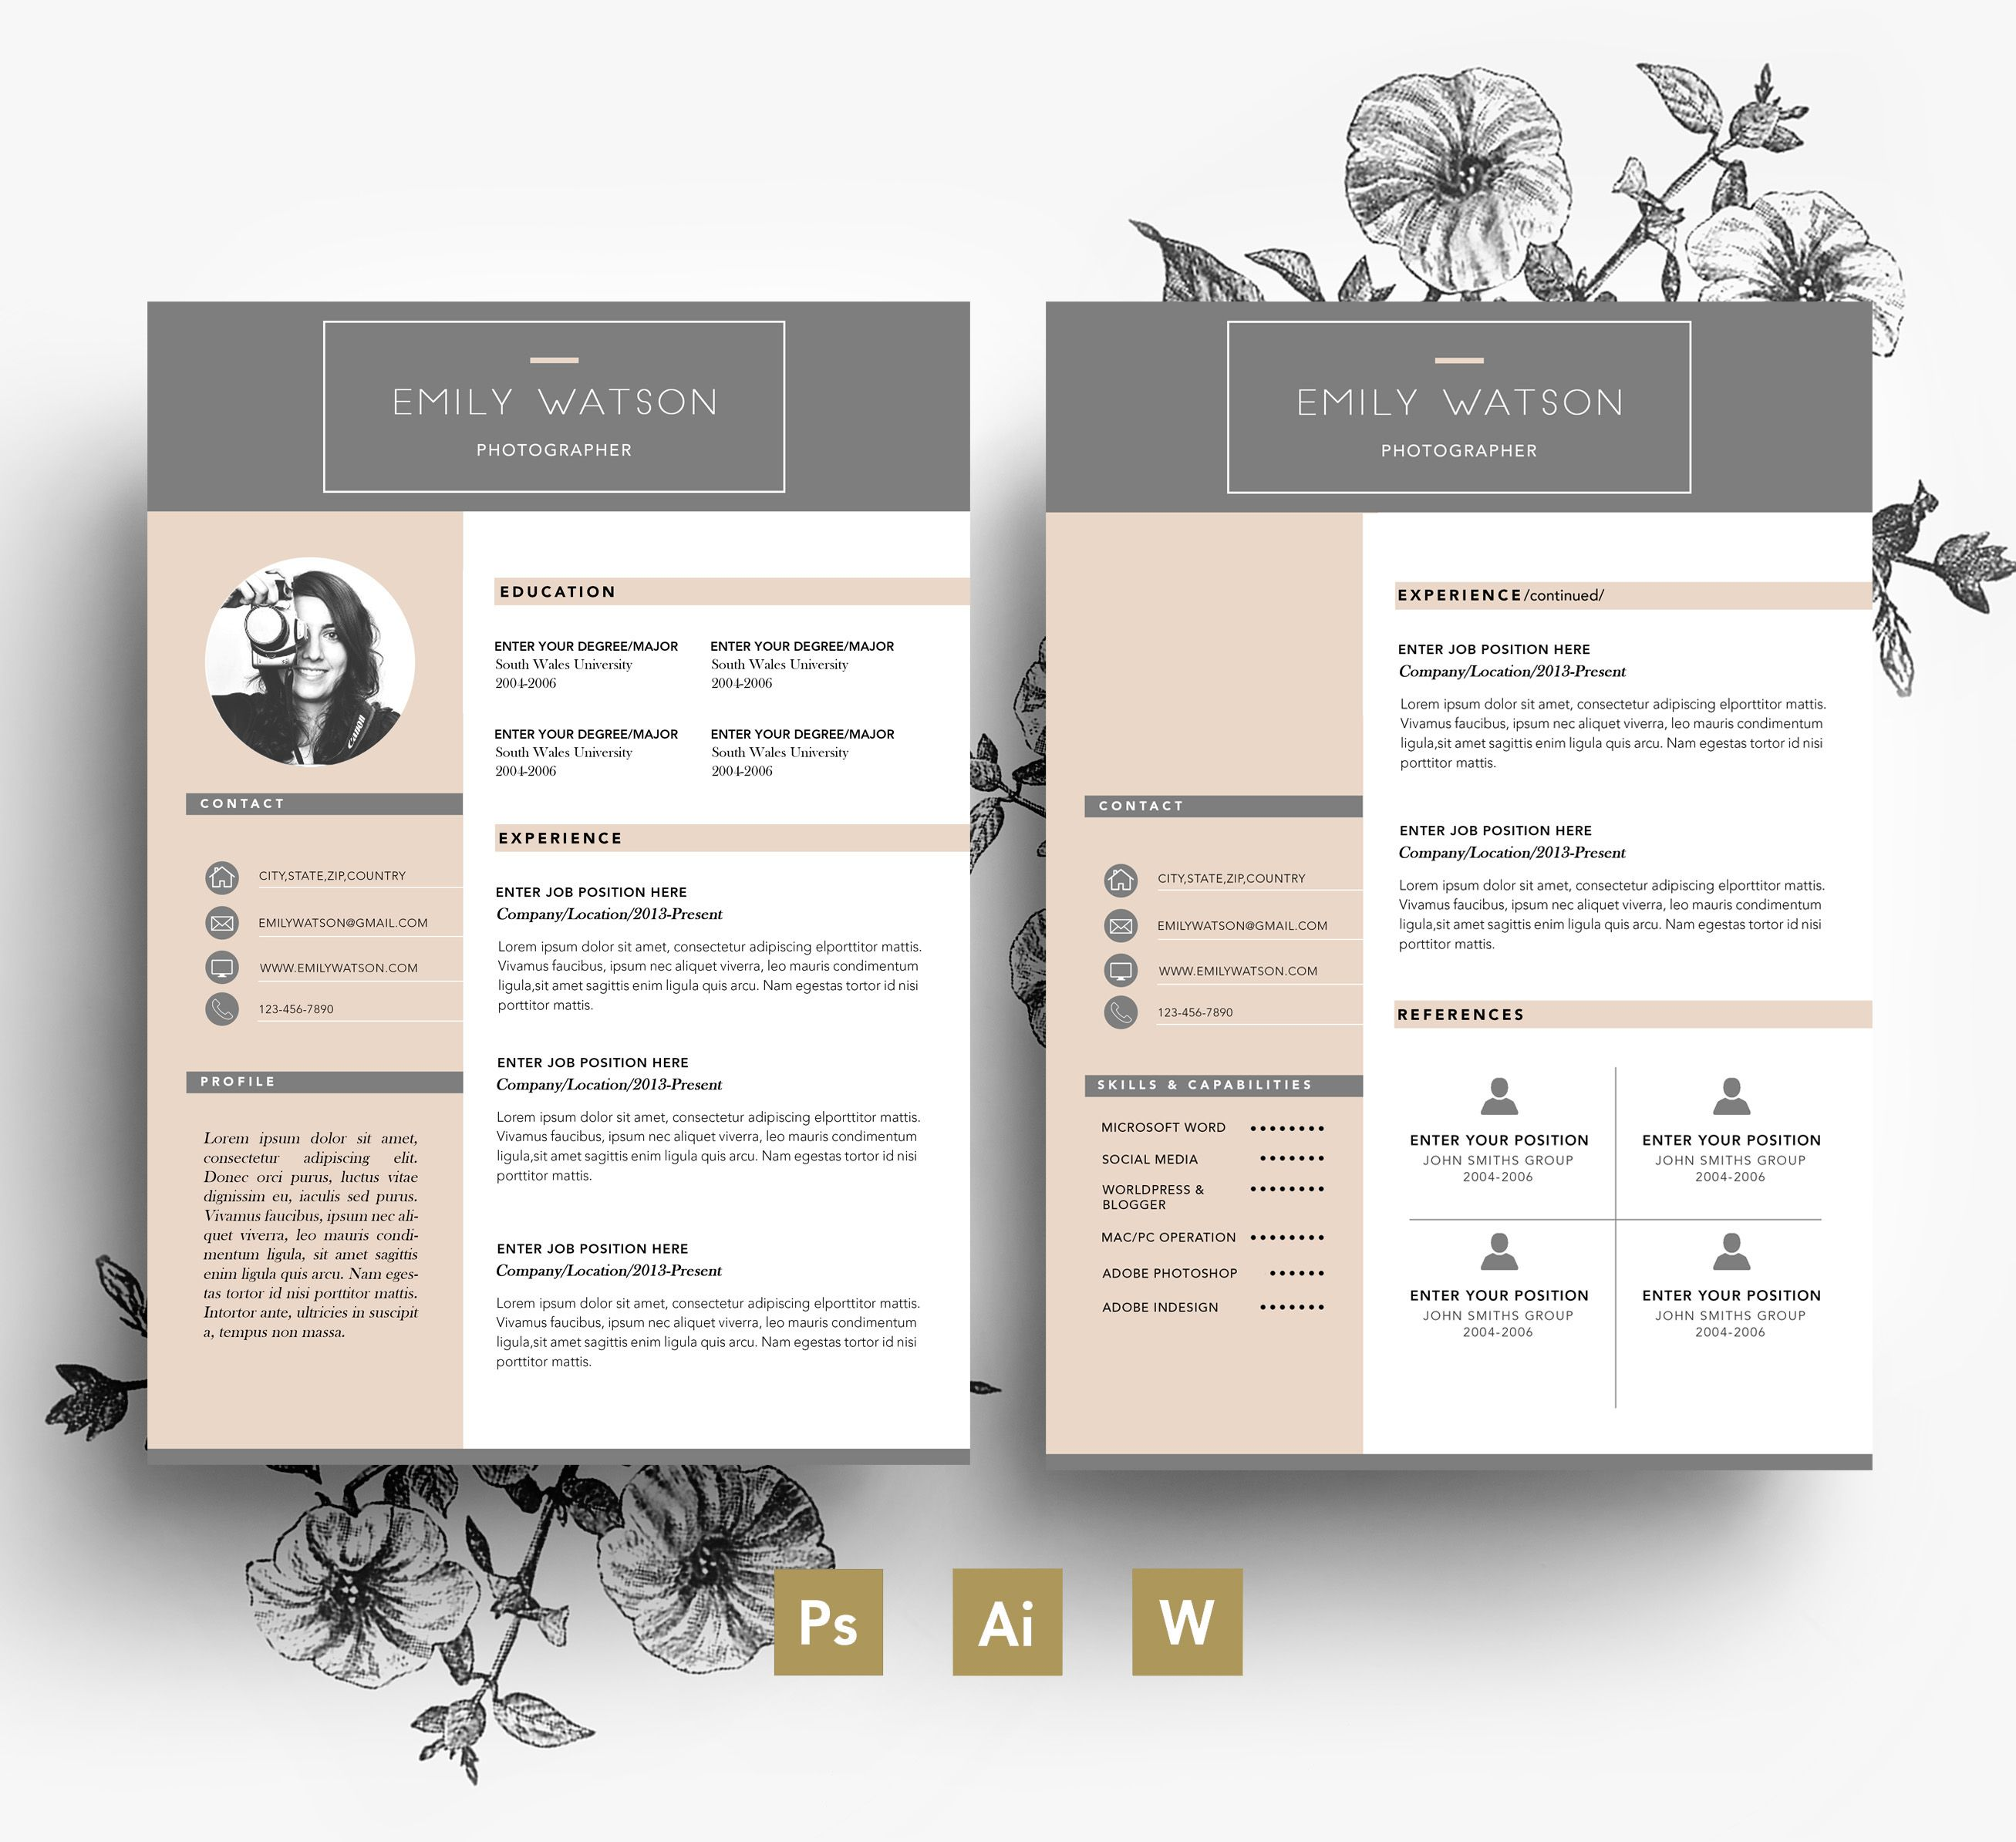 Charming 1 Page Resume Format Free Download Thick 10 Envelope Template Regular 15 Year Old Resume Sample 18th Invitation Templates Young 1and1 Templates Pink2 Binder Spine Template  Business Card   2 Page   Cover Letter ..